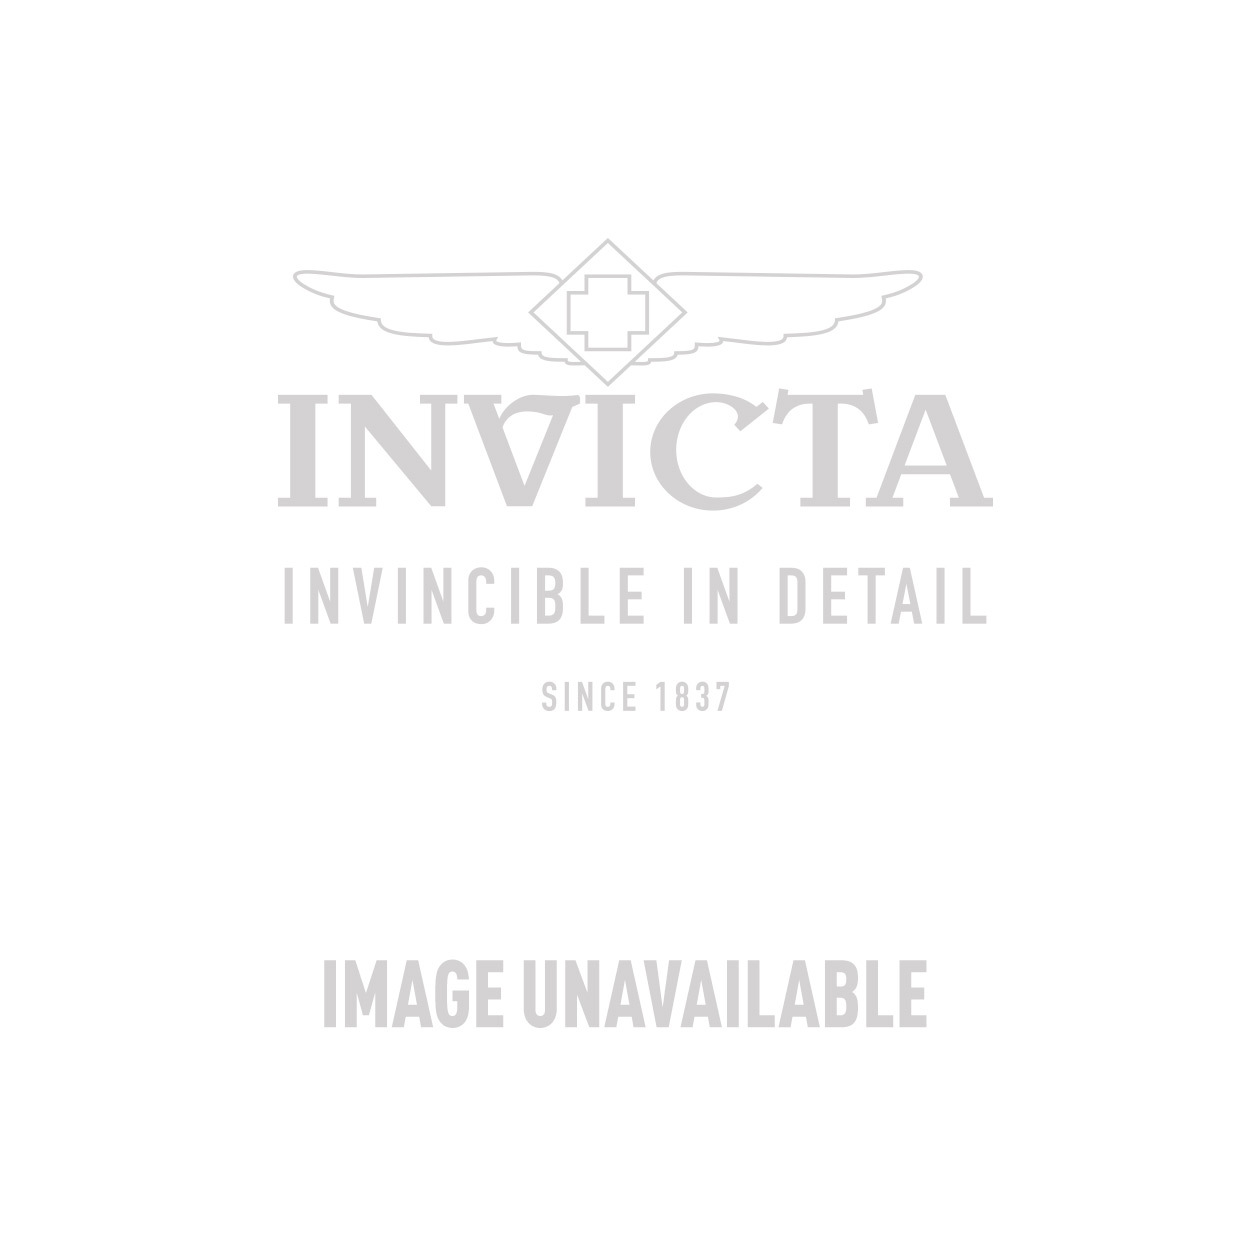 Invicta Angel Swiss Movement Quartz Watch - Stainless Steel case Stainless Steel band - Model 17899